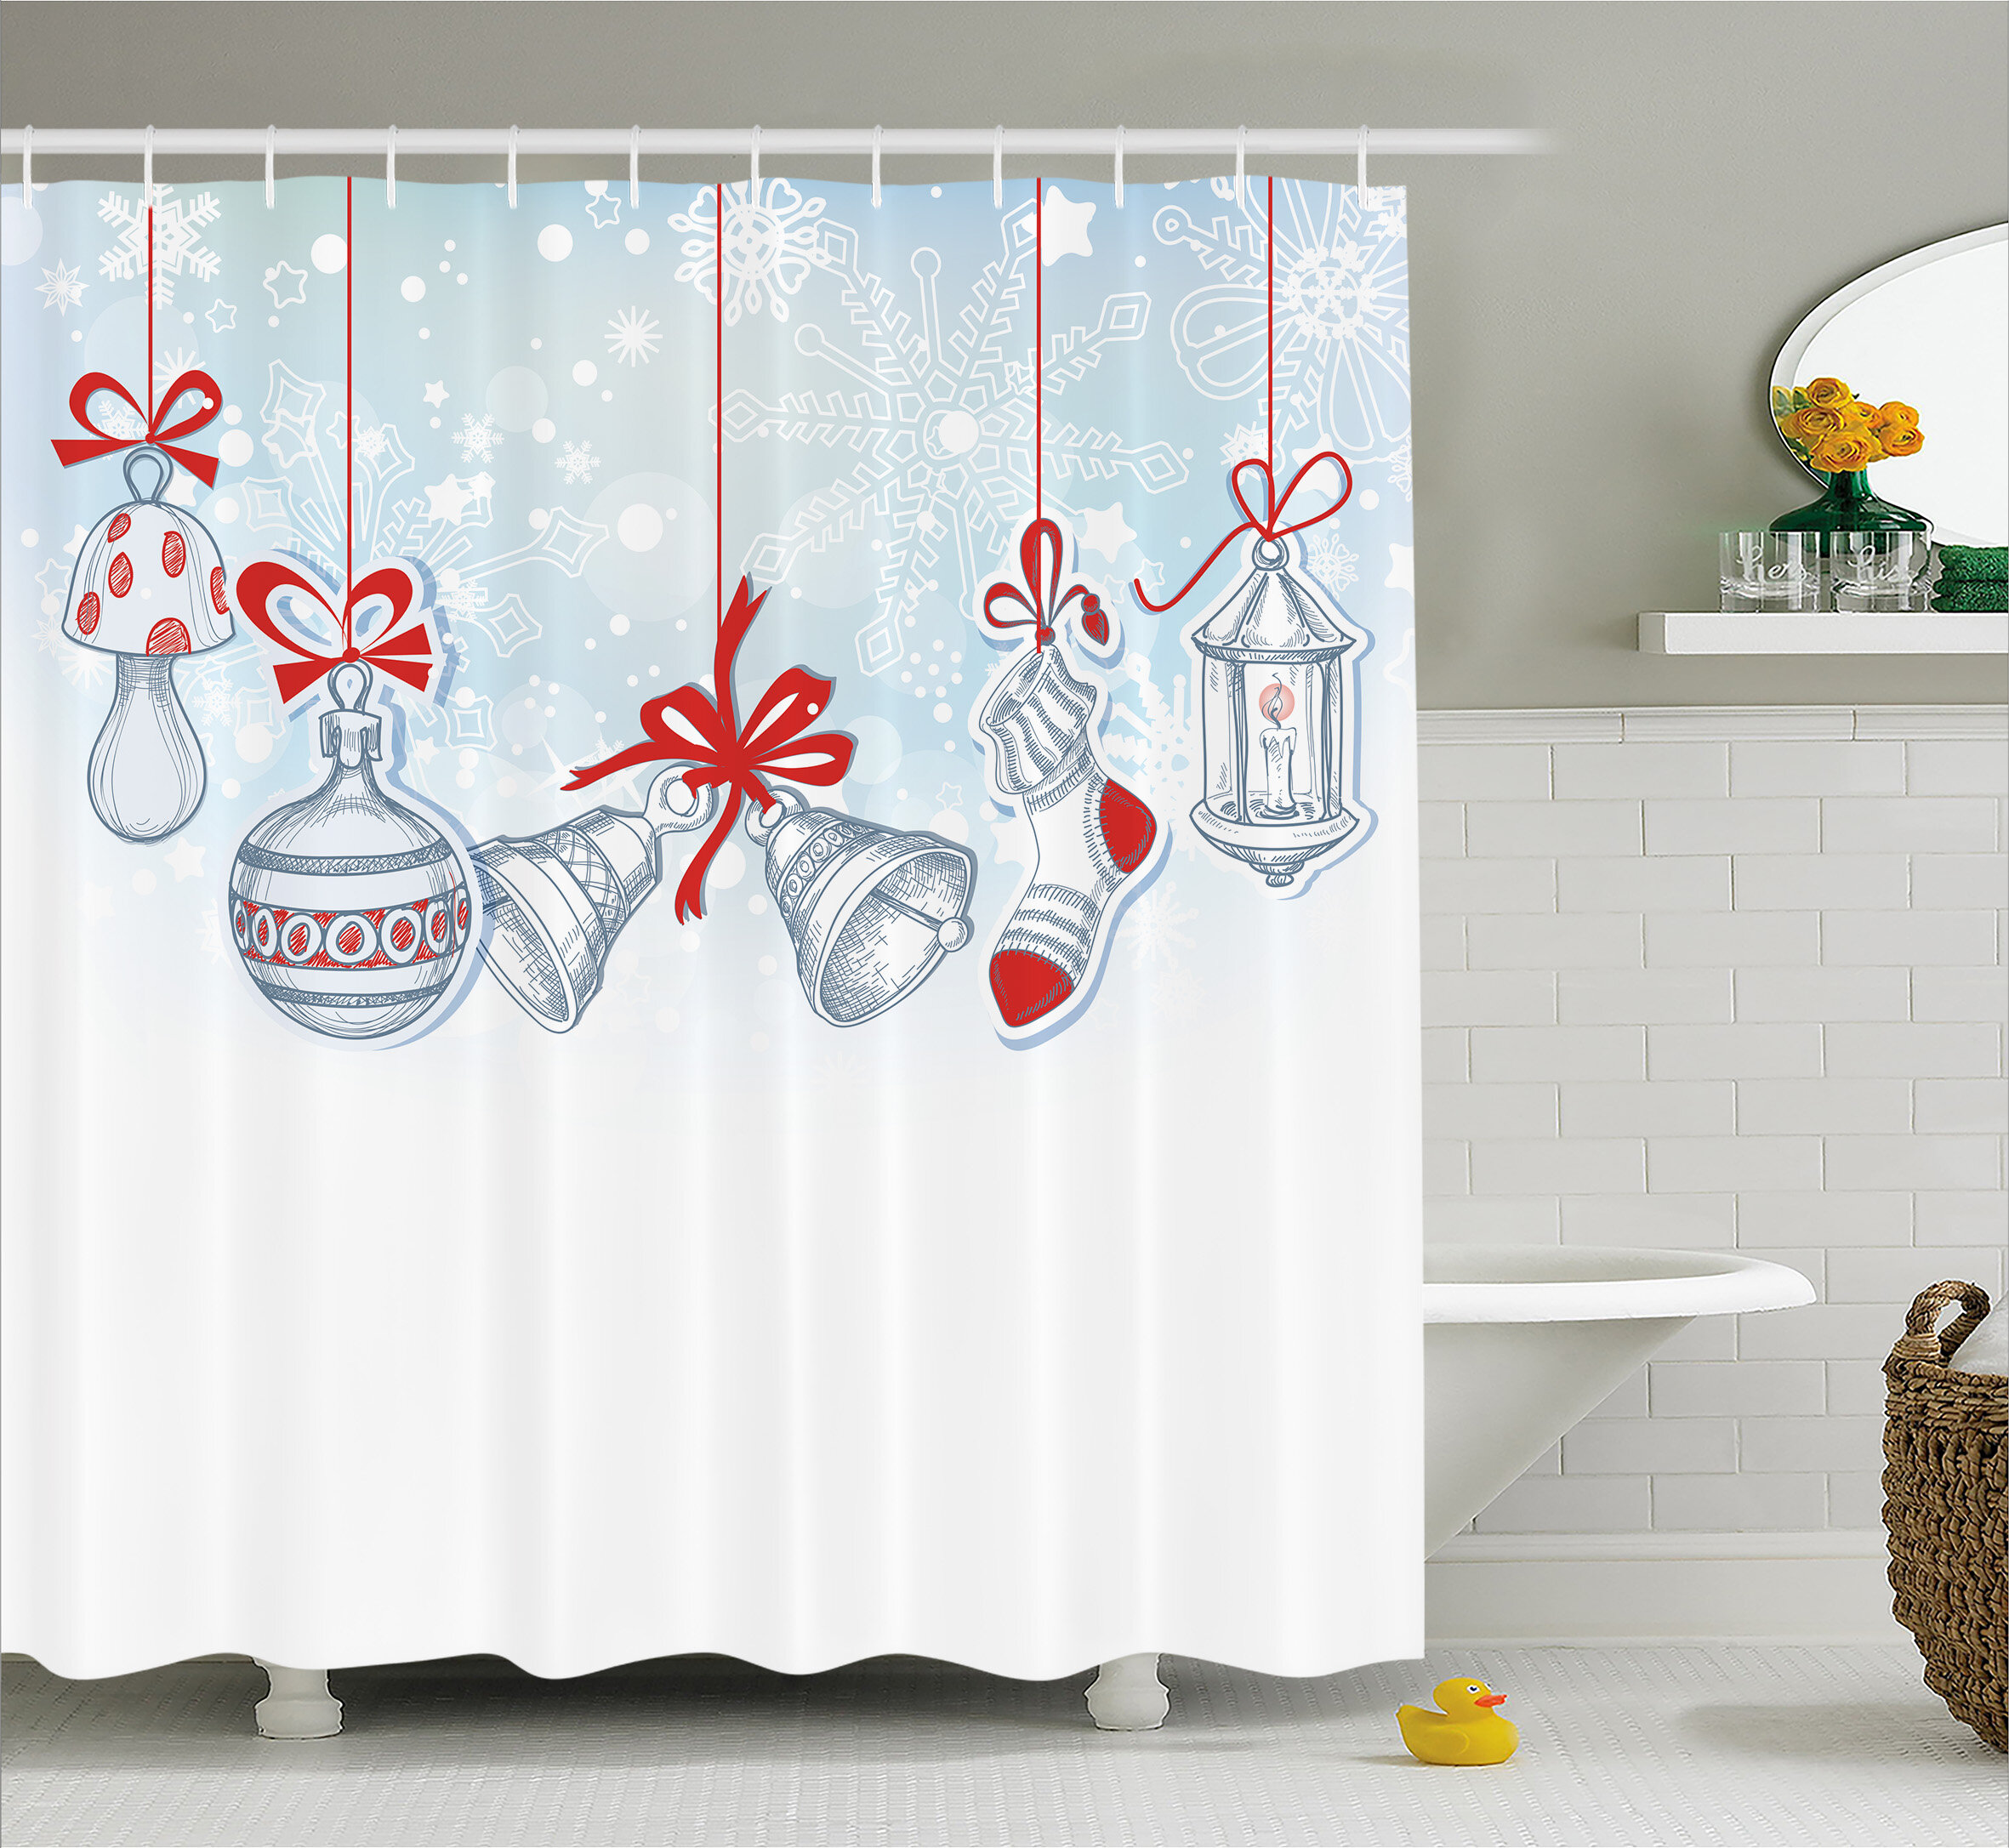 The Holiday Aisle Christmas Retro Decorations Shower Curtain